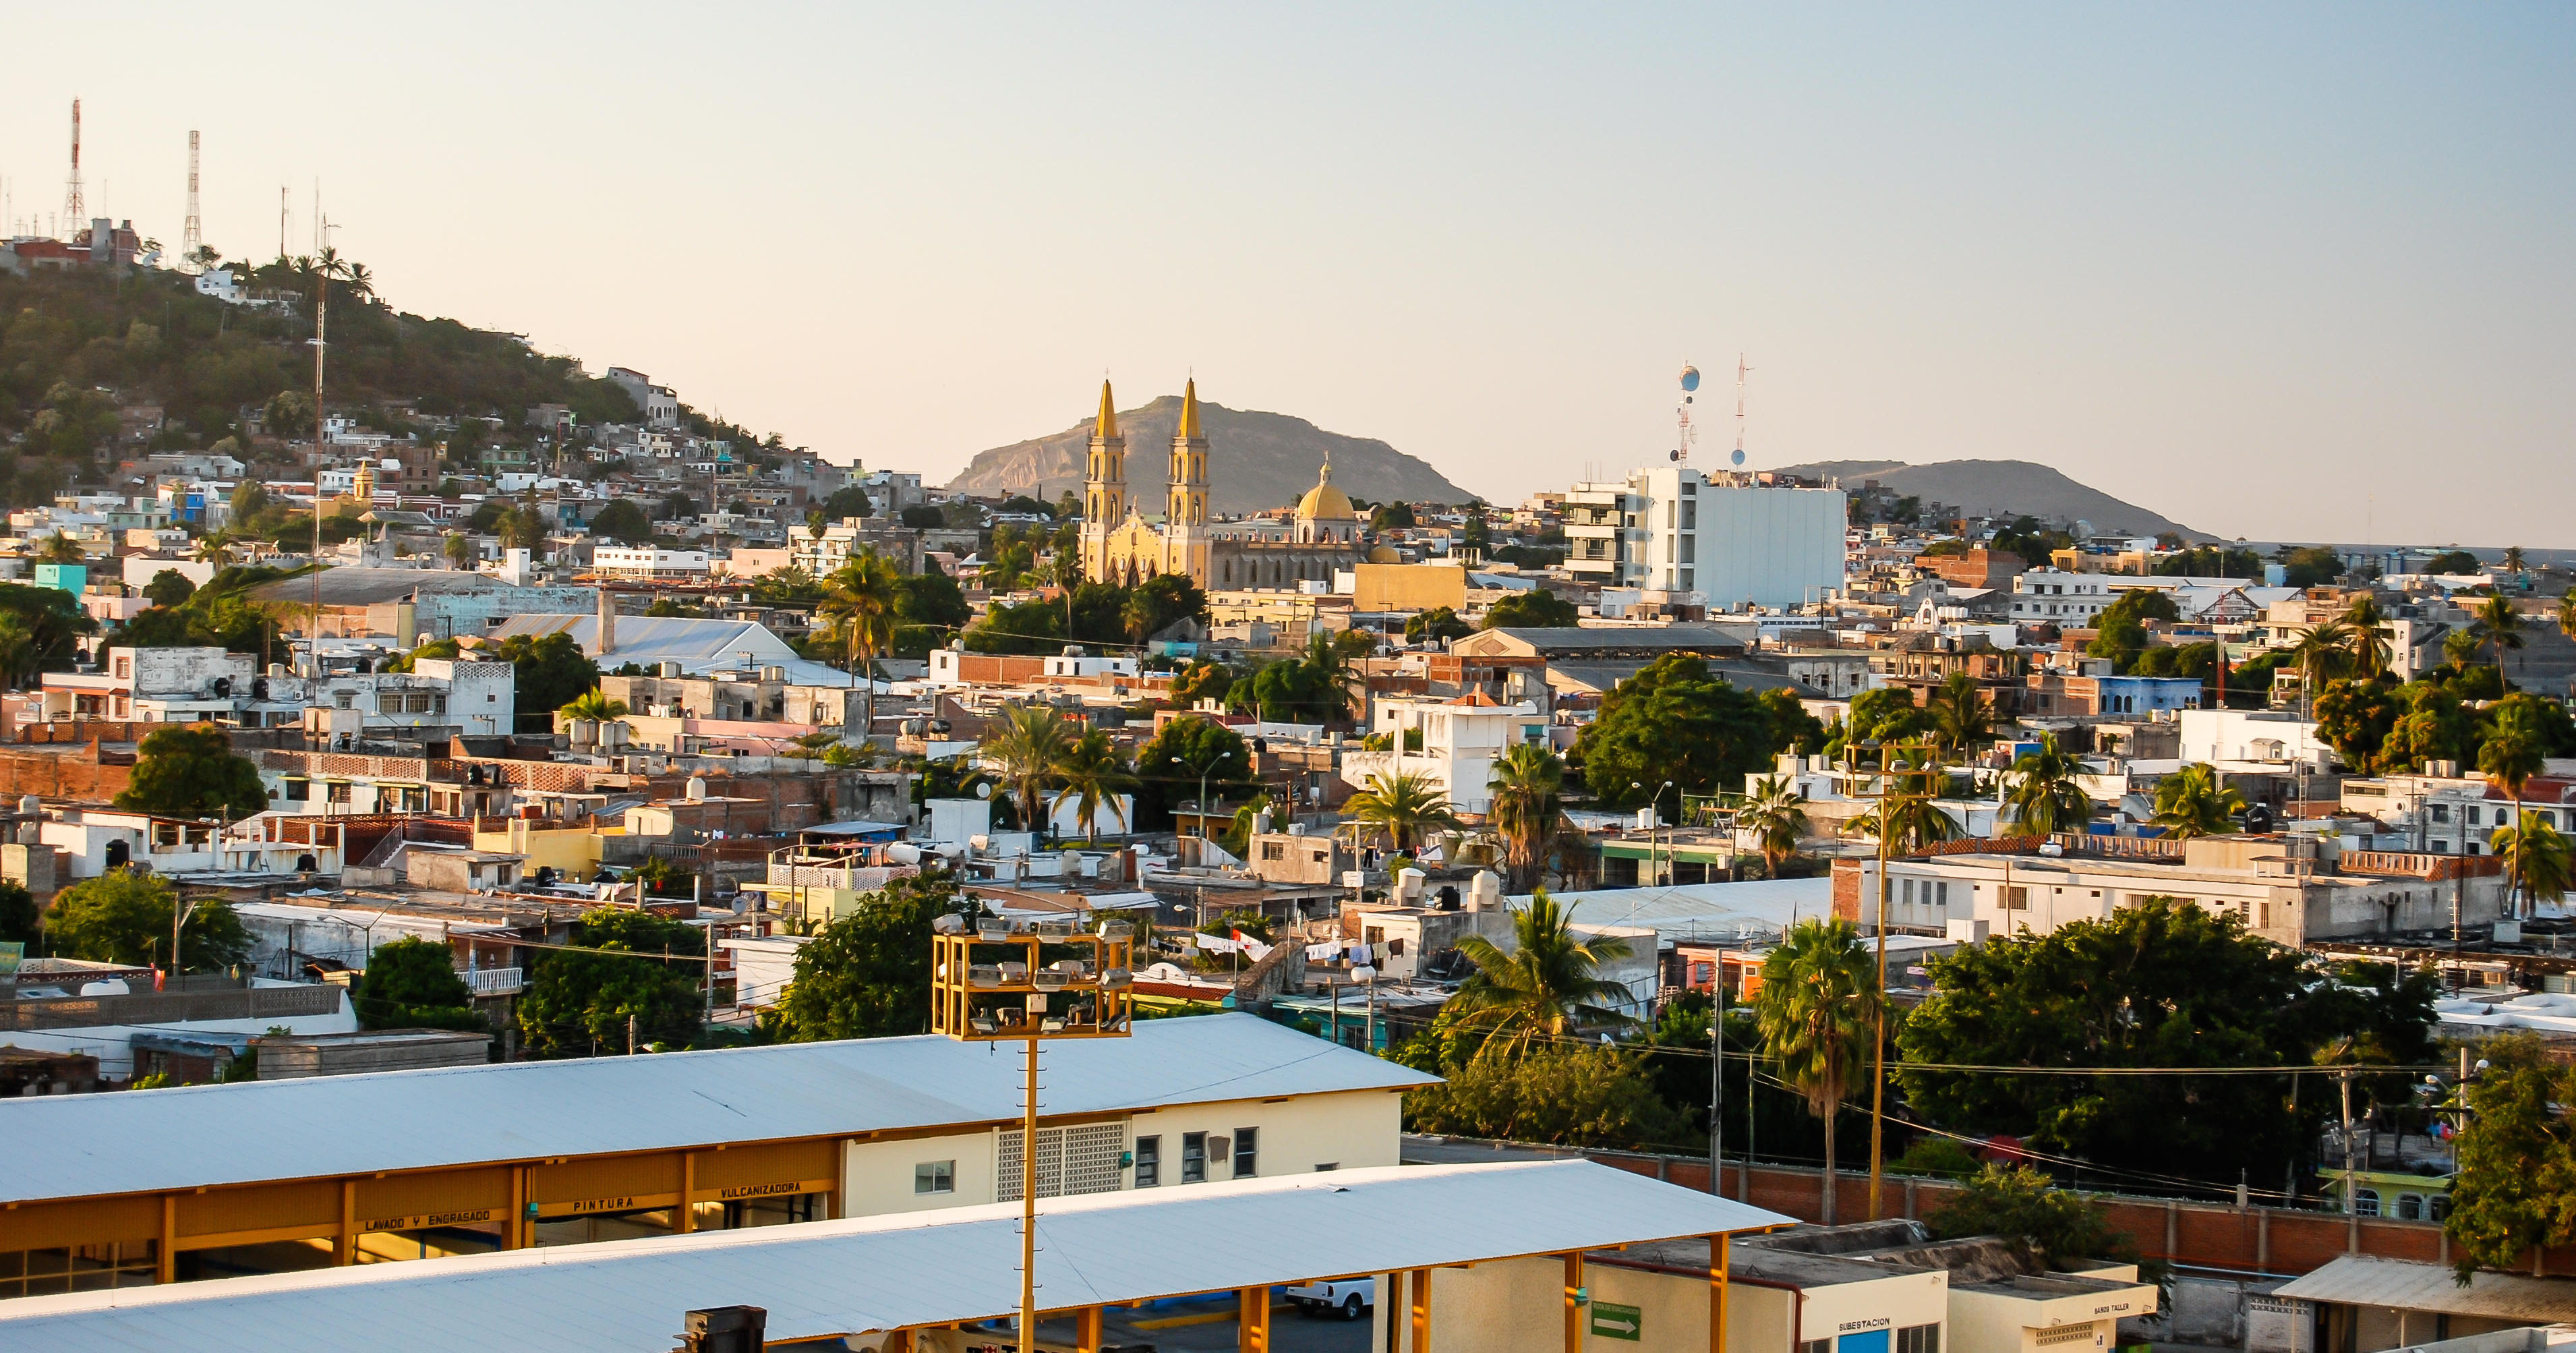 The 5 Best Hotels In Mazatlán Mexico